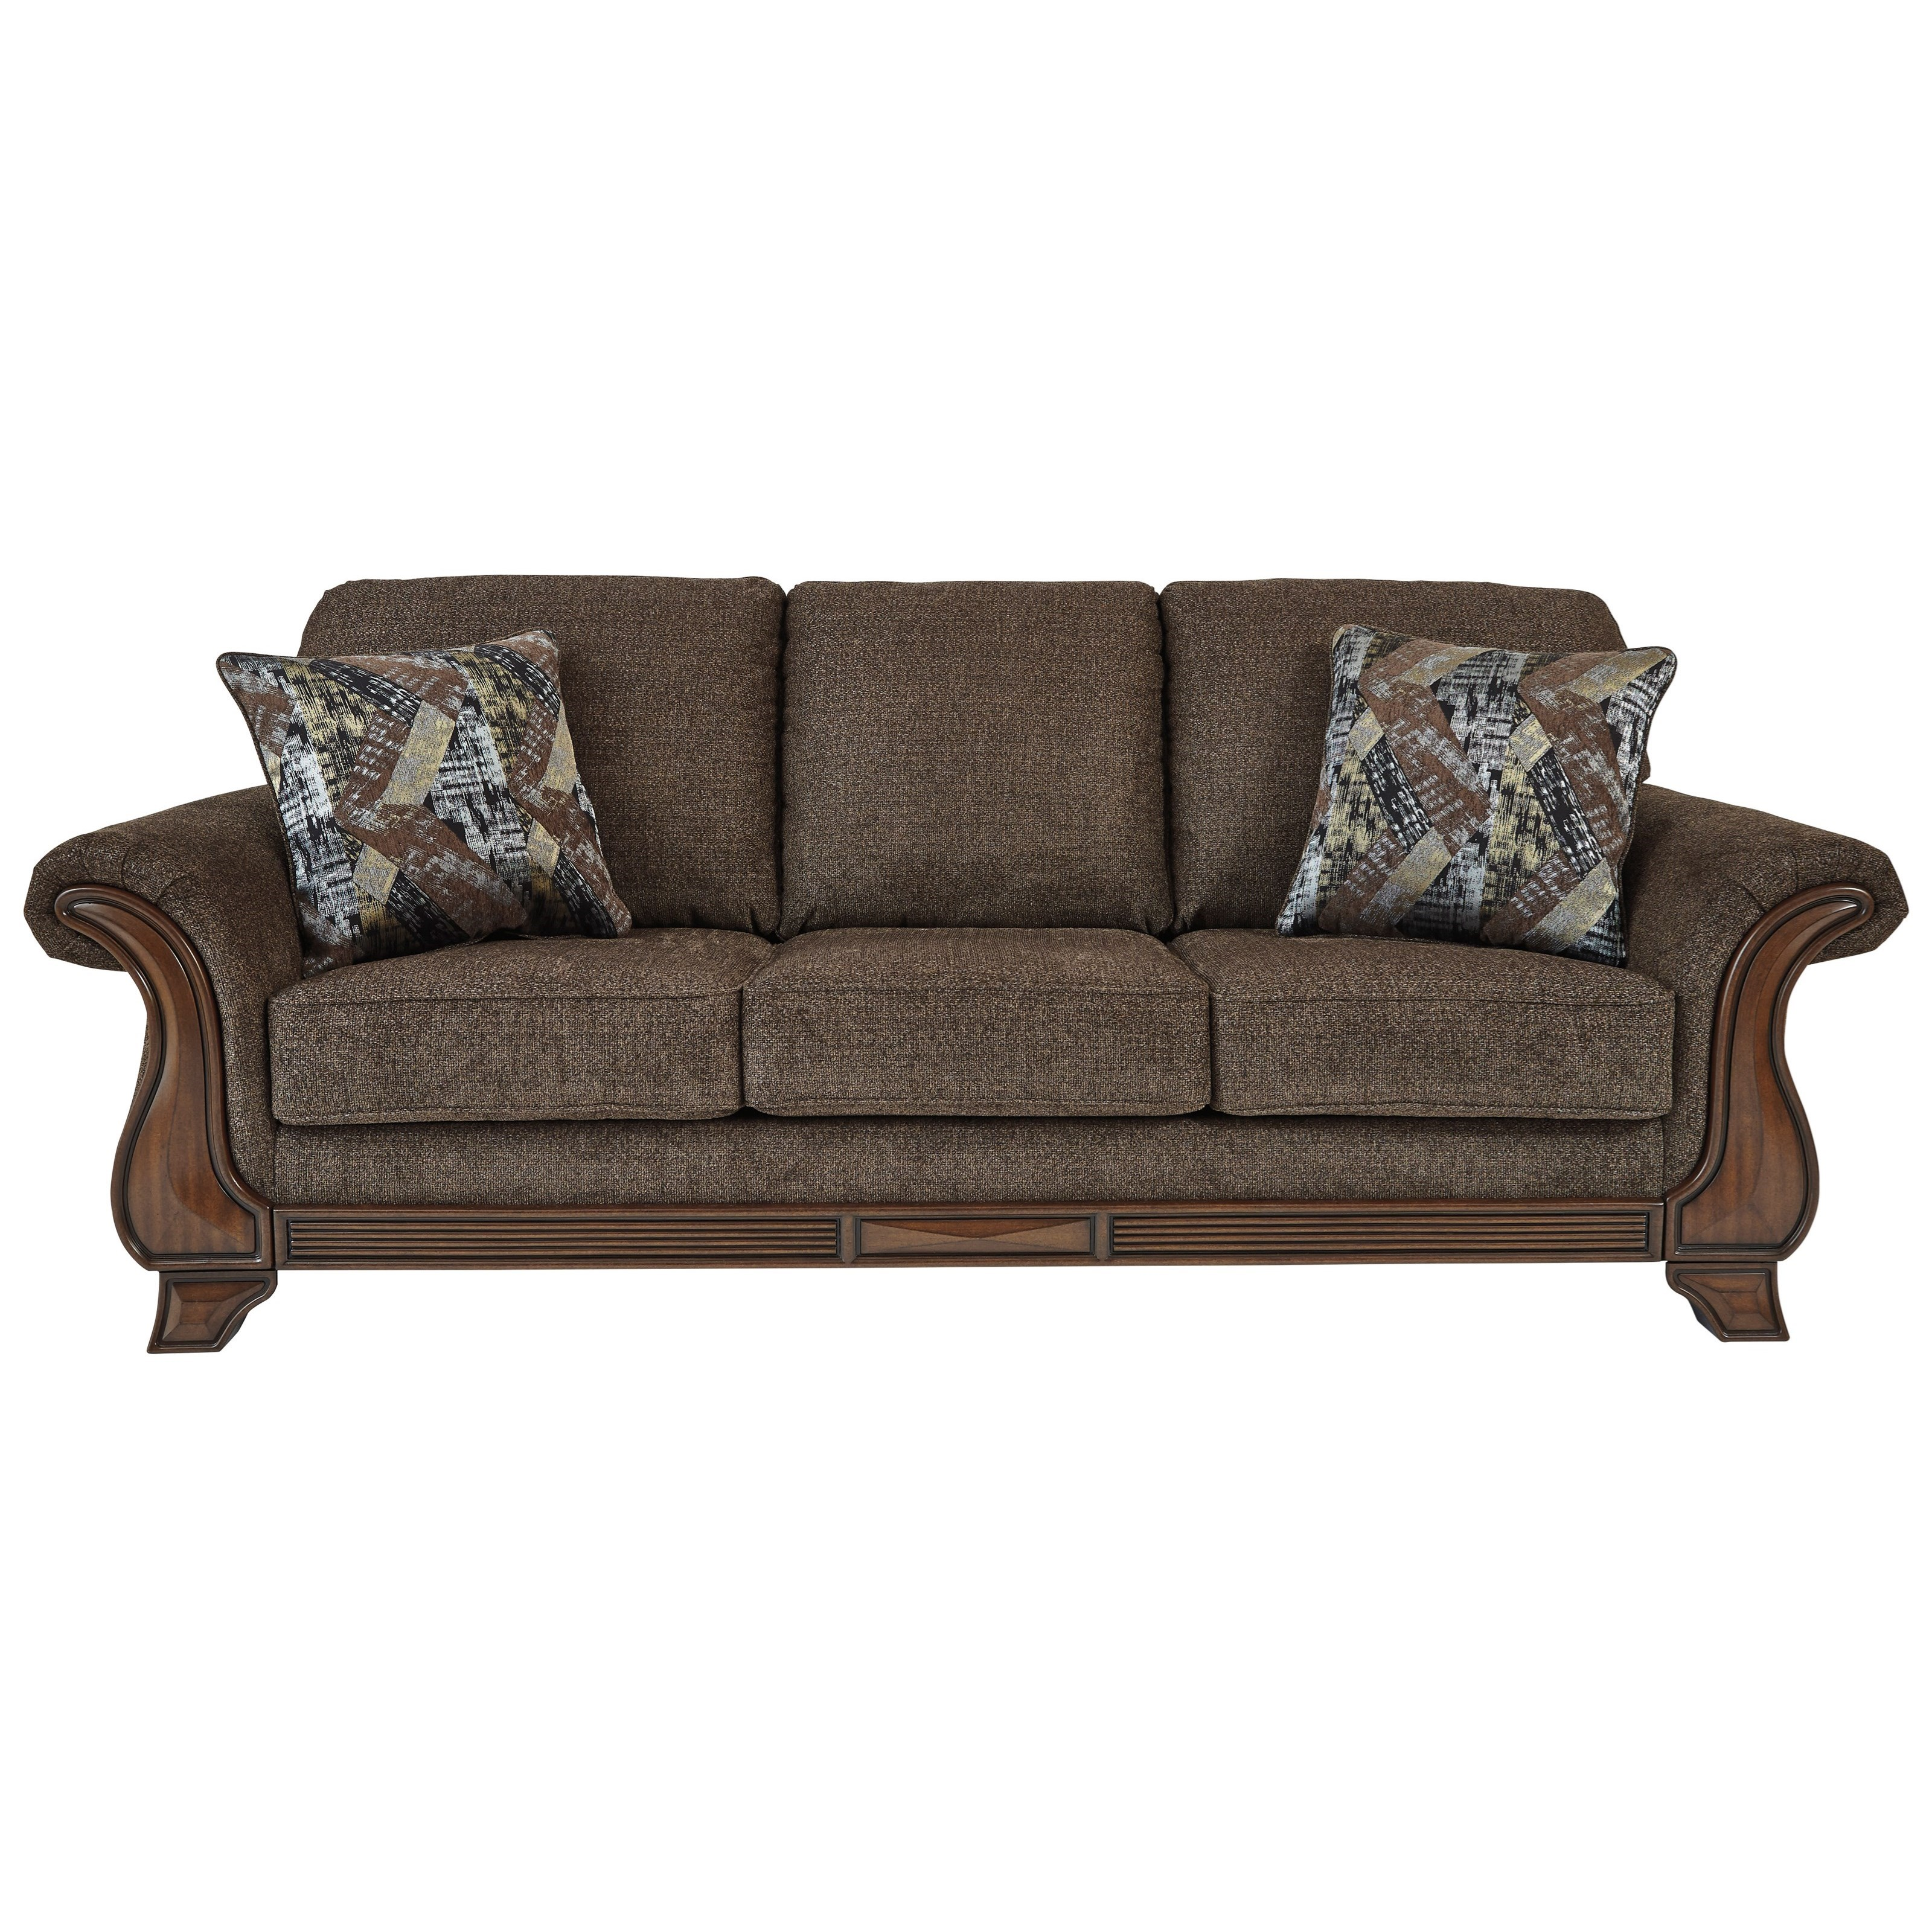 Miltonwood Sofa by Benchcraft at Beck's Furniture